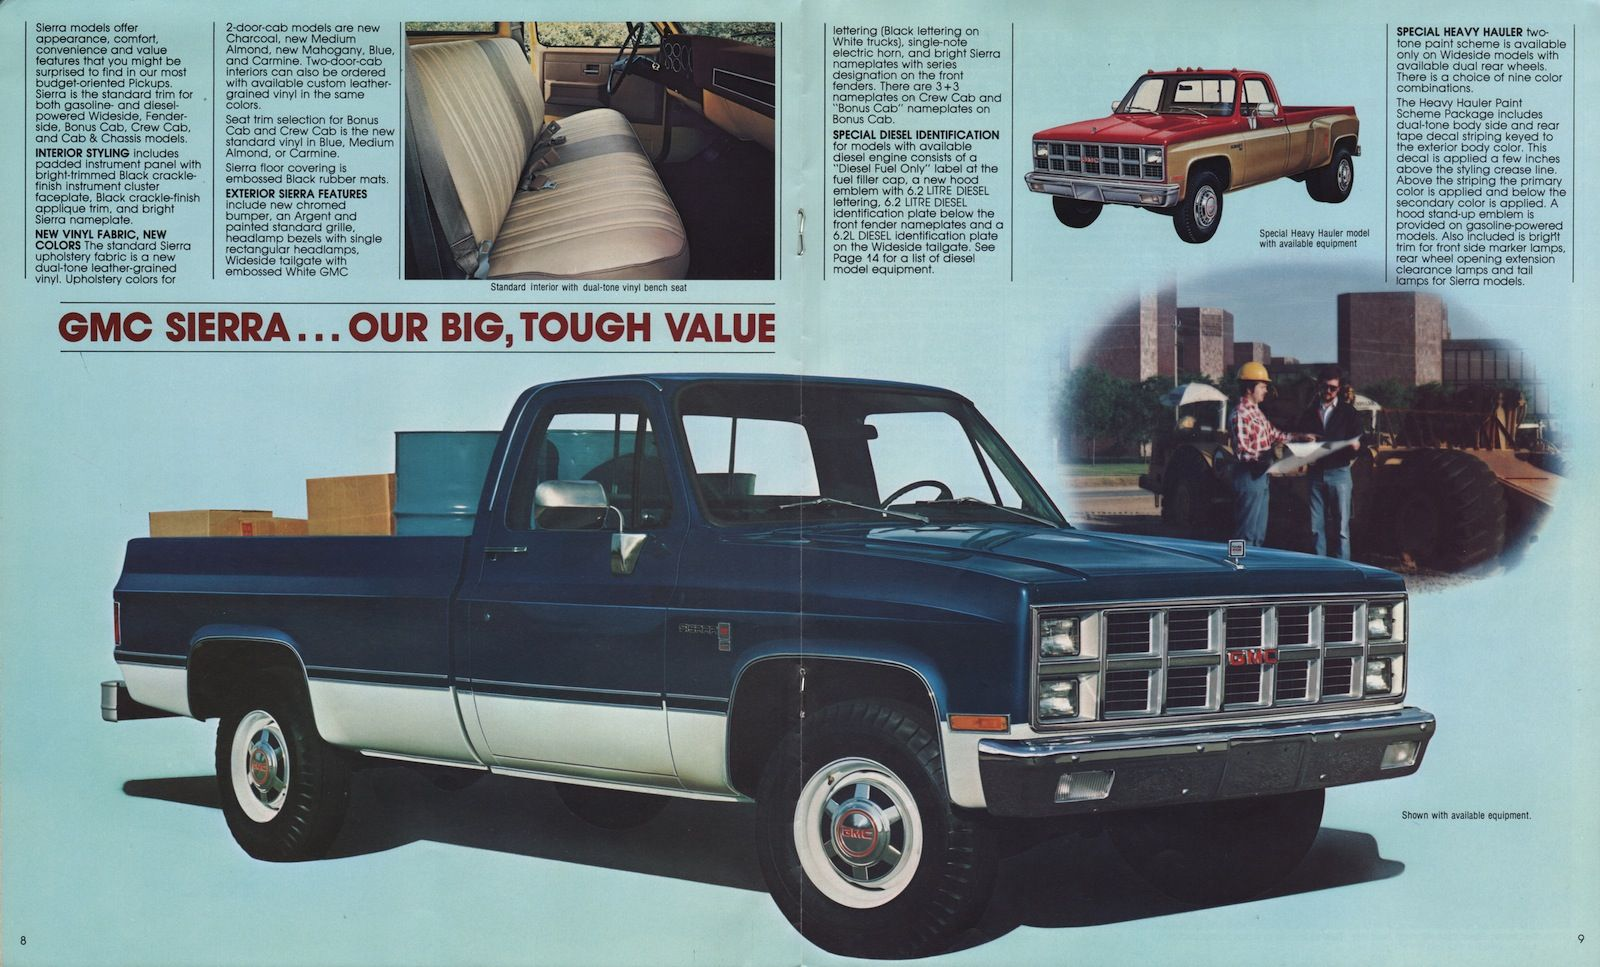 Astounding 1982 Gmc Sierra Gmc Trucks Chevy Trucks Gm Trucks Beatyapartments Chair Design Images Beatyapartmentscom